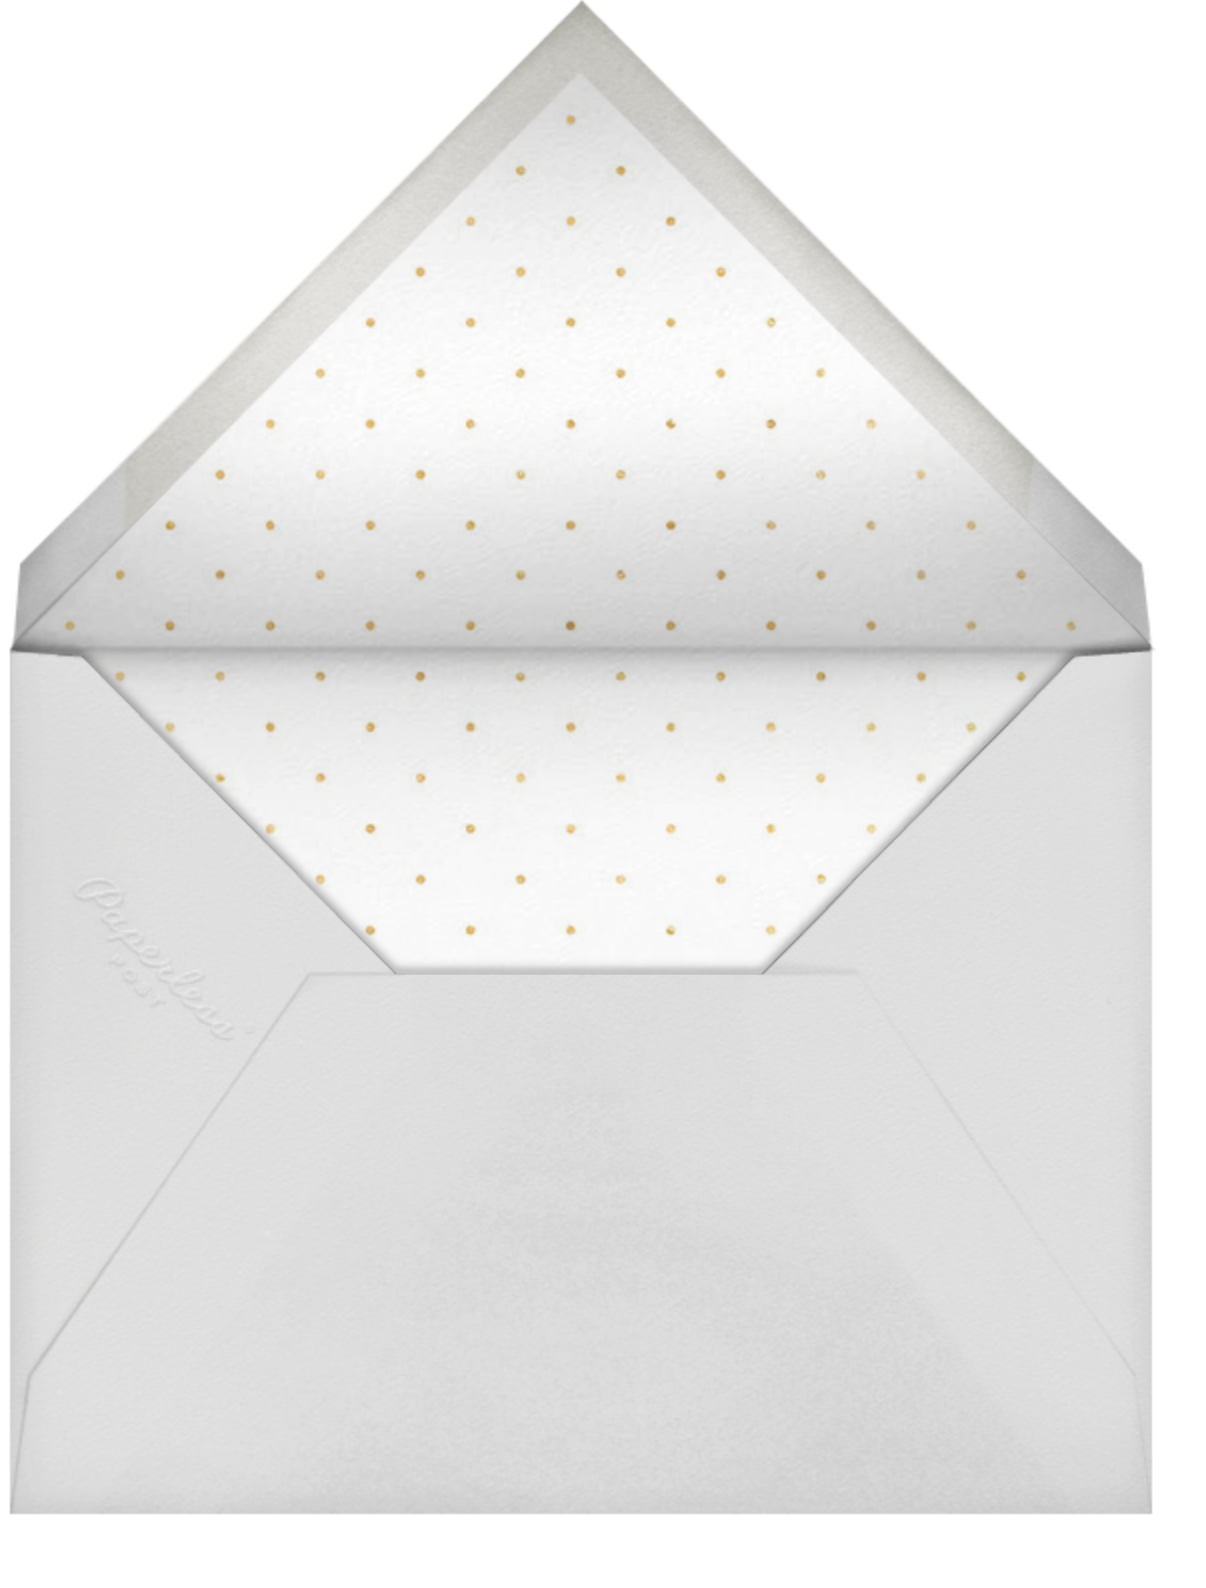 Simply the Best - Sugar Paper - Engagement party - envelope back